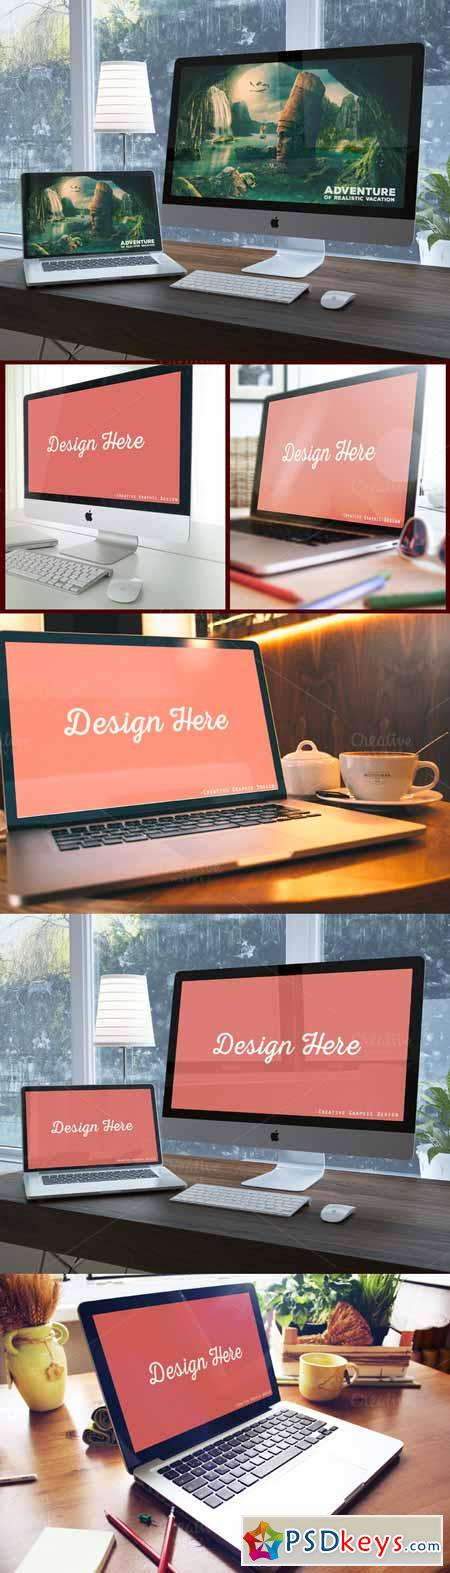 Beautifull Workspace Mock Up 328462